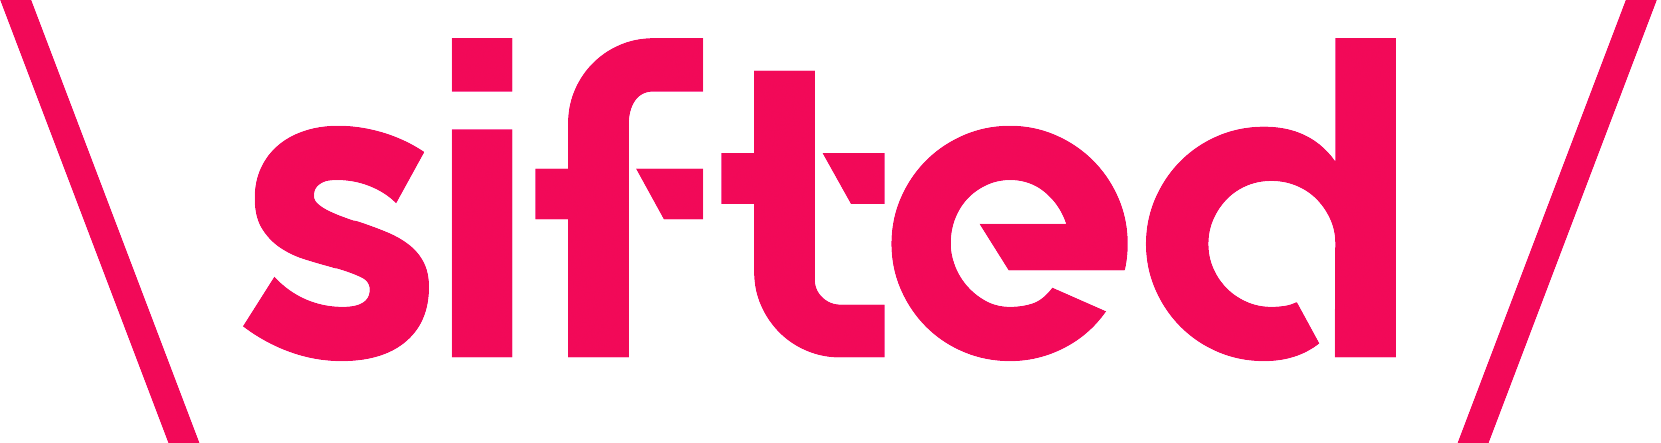 sifted-logo.png